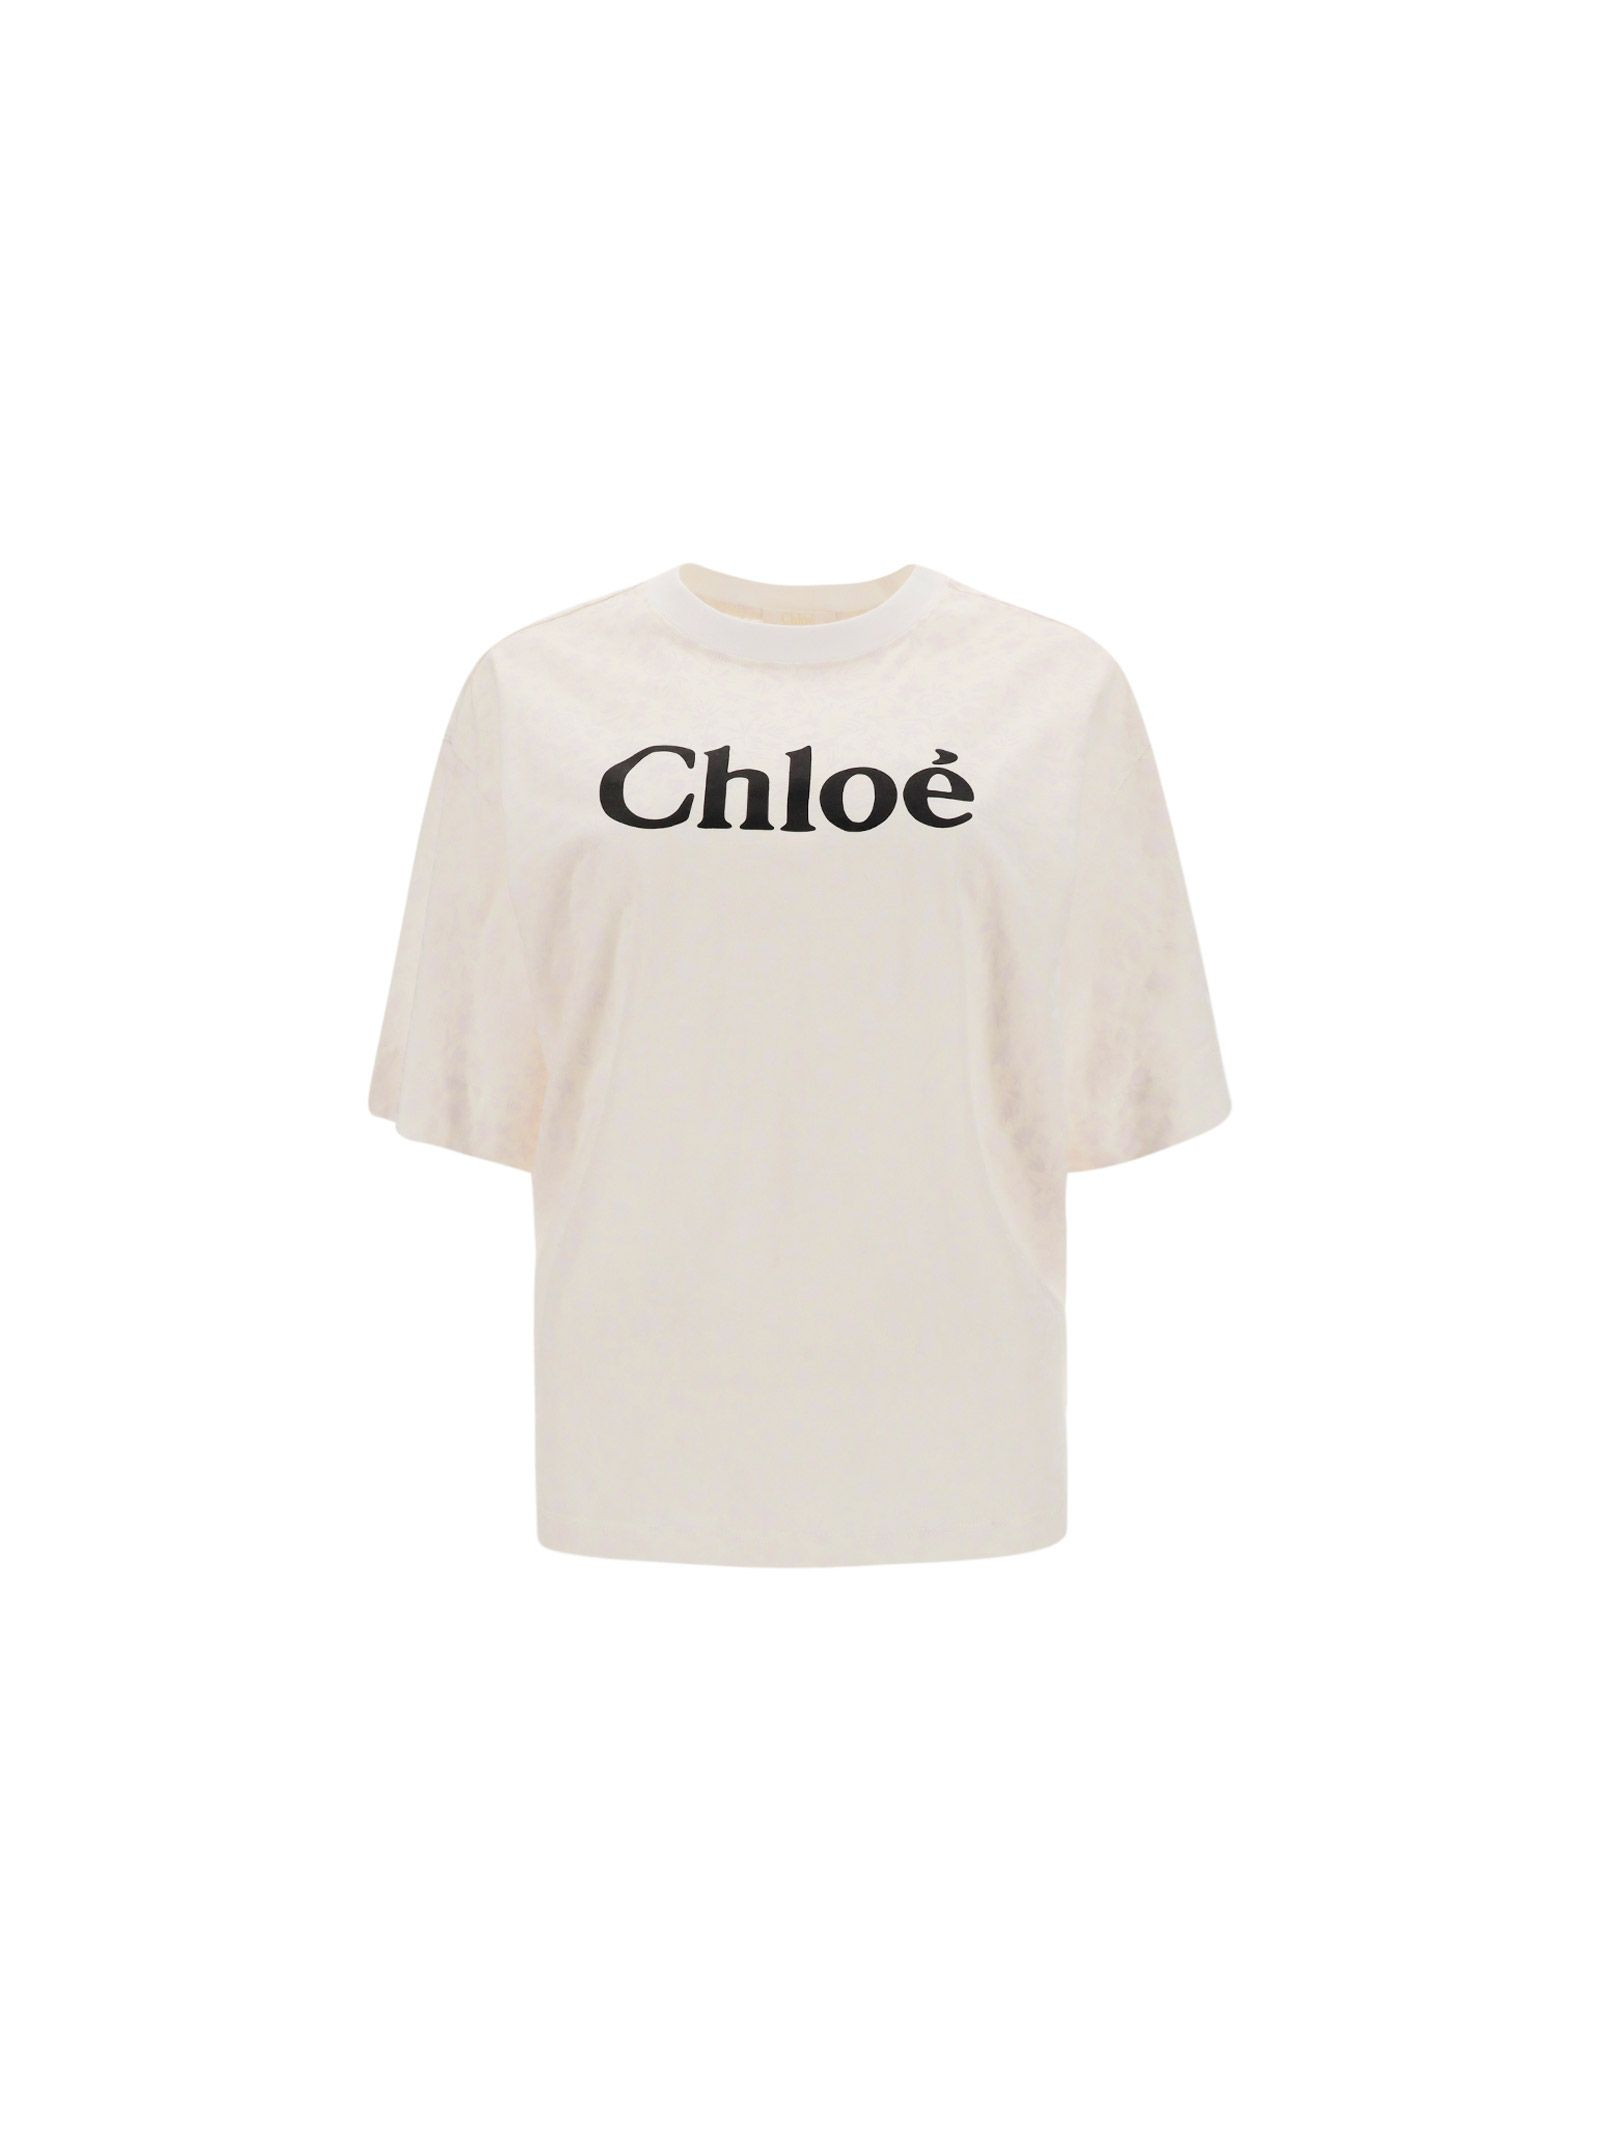 Chloé CHLO WOMEN'S CHC21SJH83183101 WHITE COTTON T-SHIRT